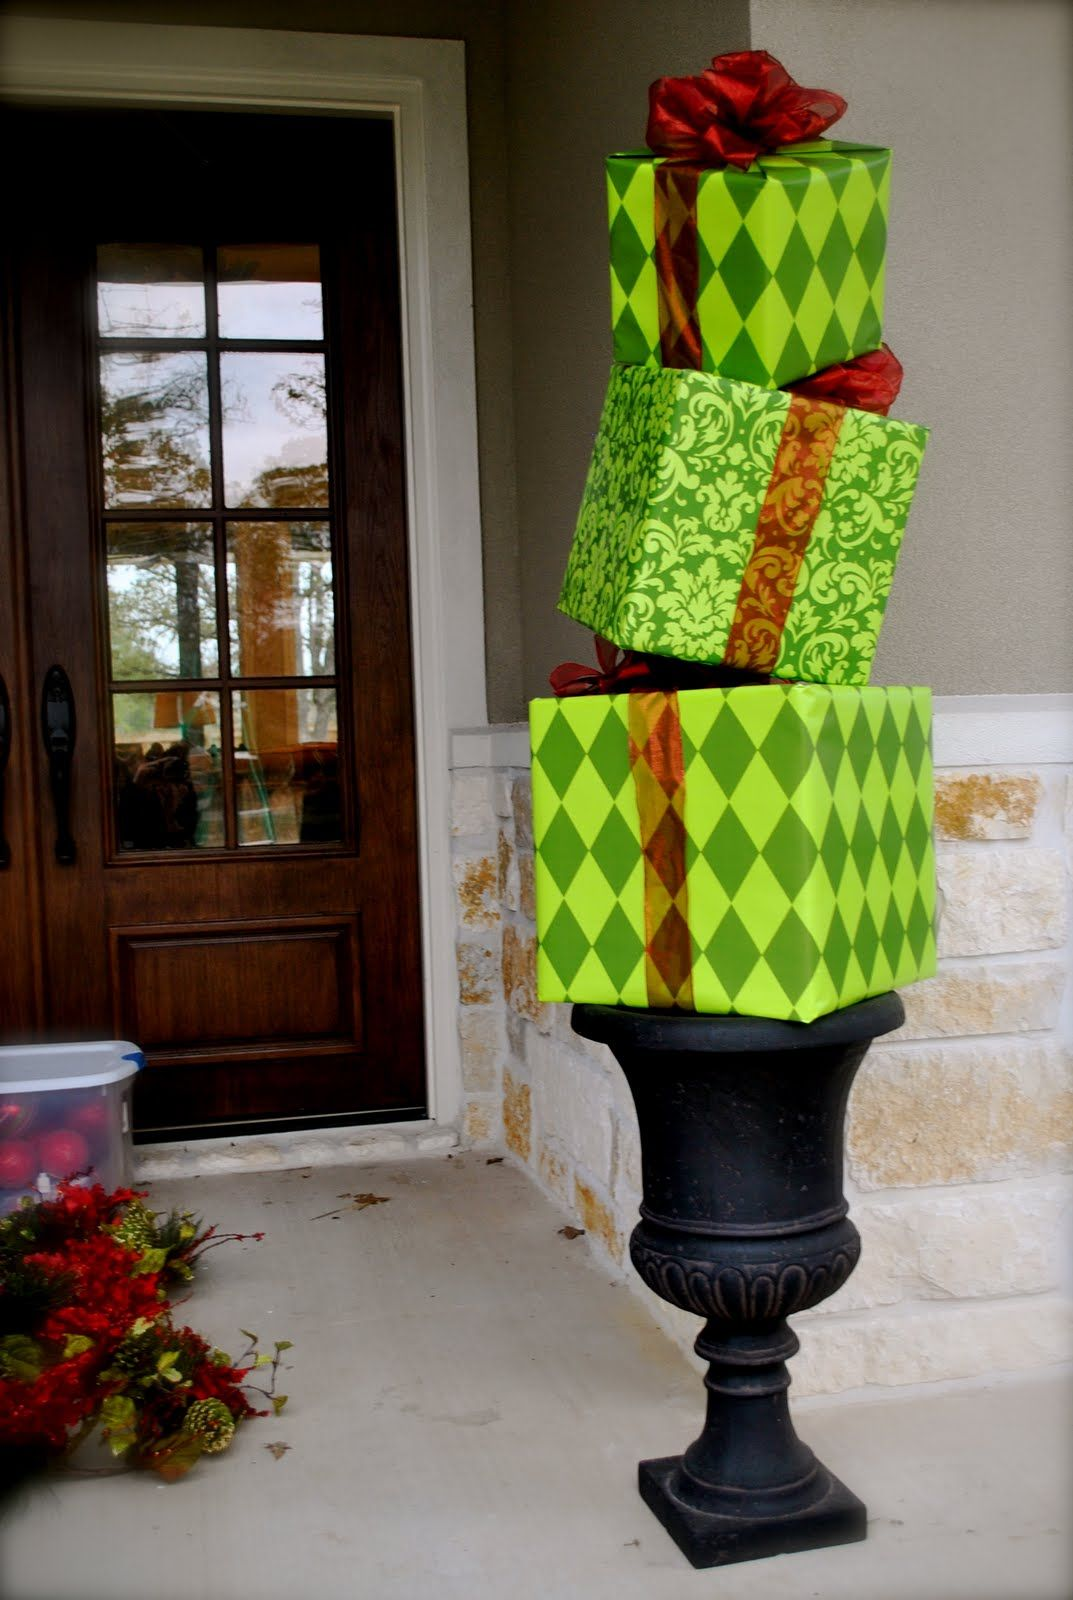 Christmas outdoor window decoration ideas - 20 Most Incredible Christmas Porch Decorating Ideas The Front Porch And Front Door Are Our Favorite Places To Decorate For The Holidays And To Show Our